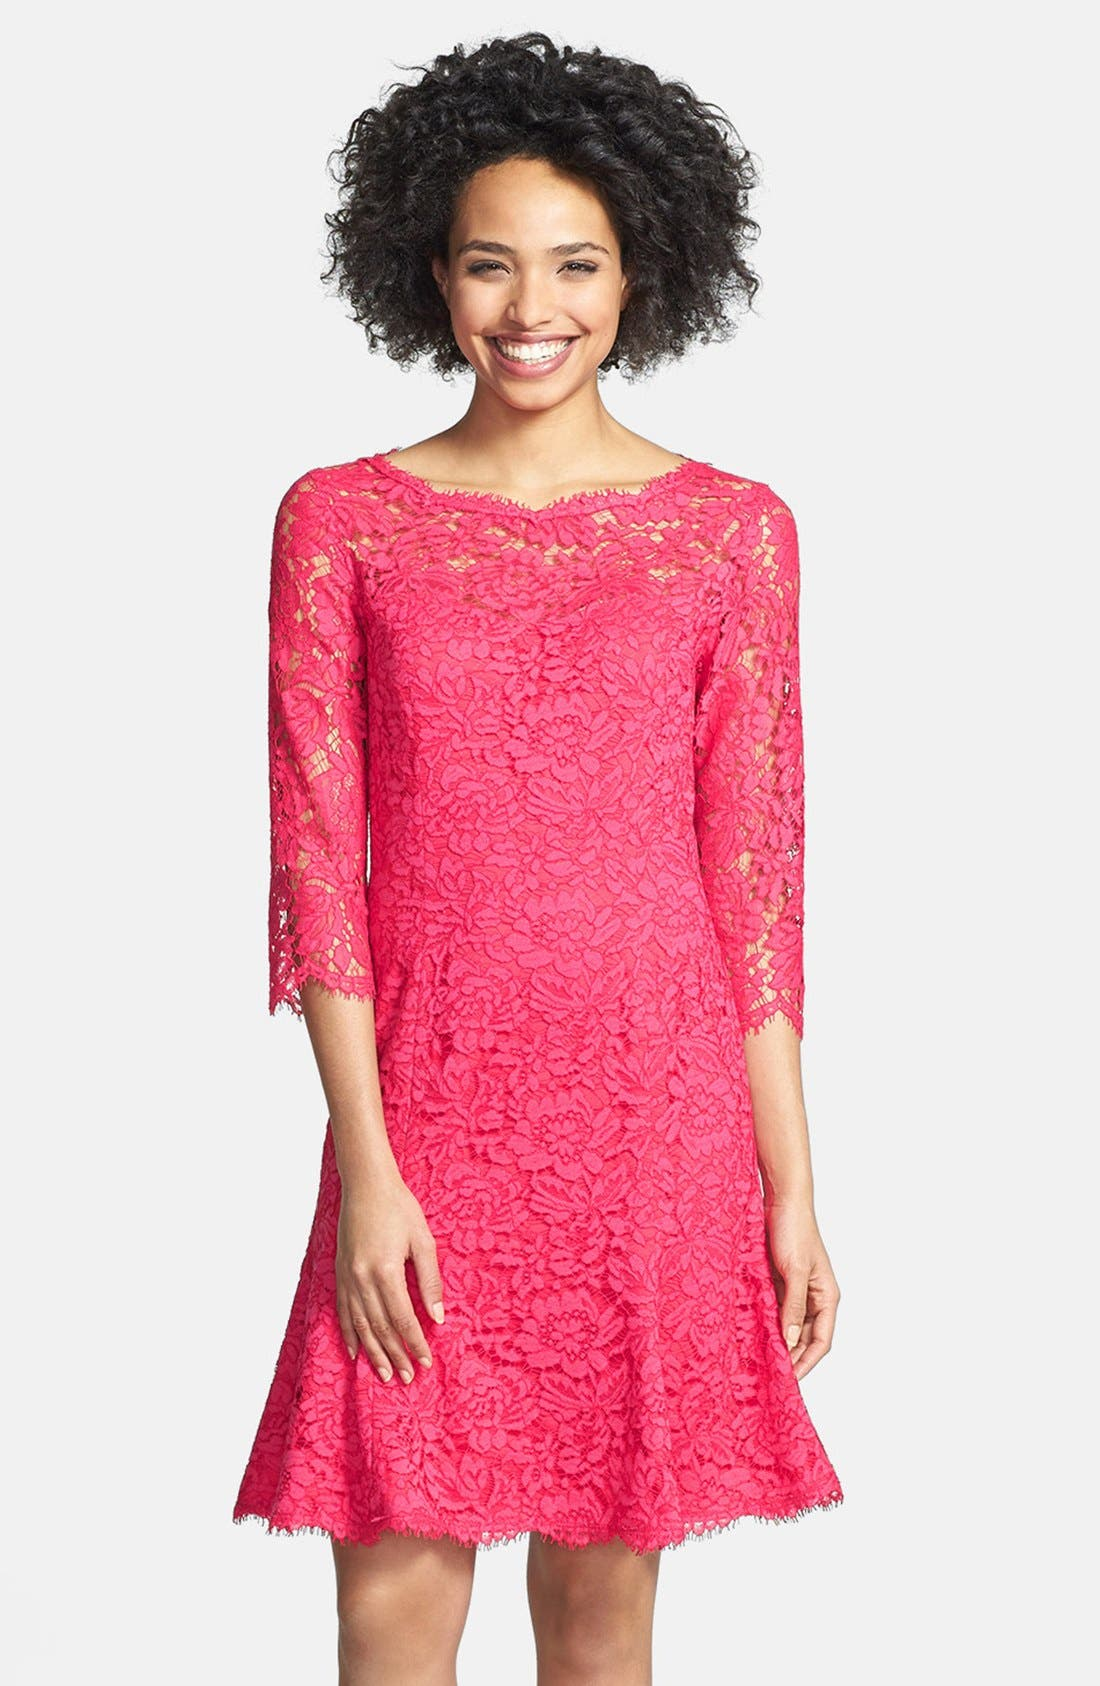 Alternate Image 1 Selected - Eliza J Lace Fit & Flare Dress (Regular & Petite)